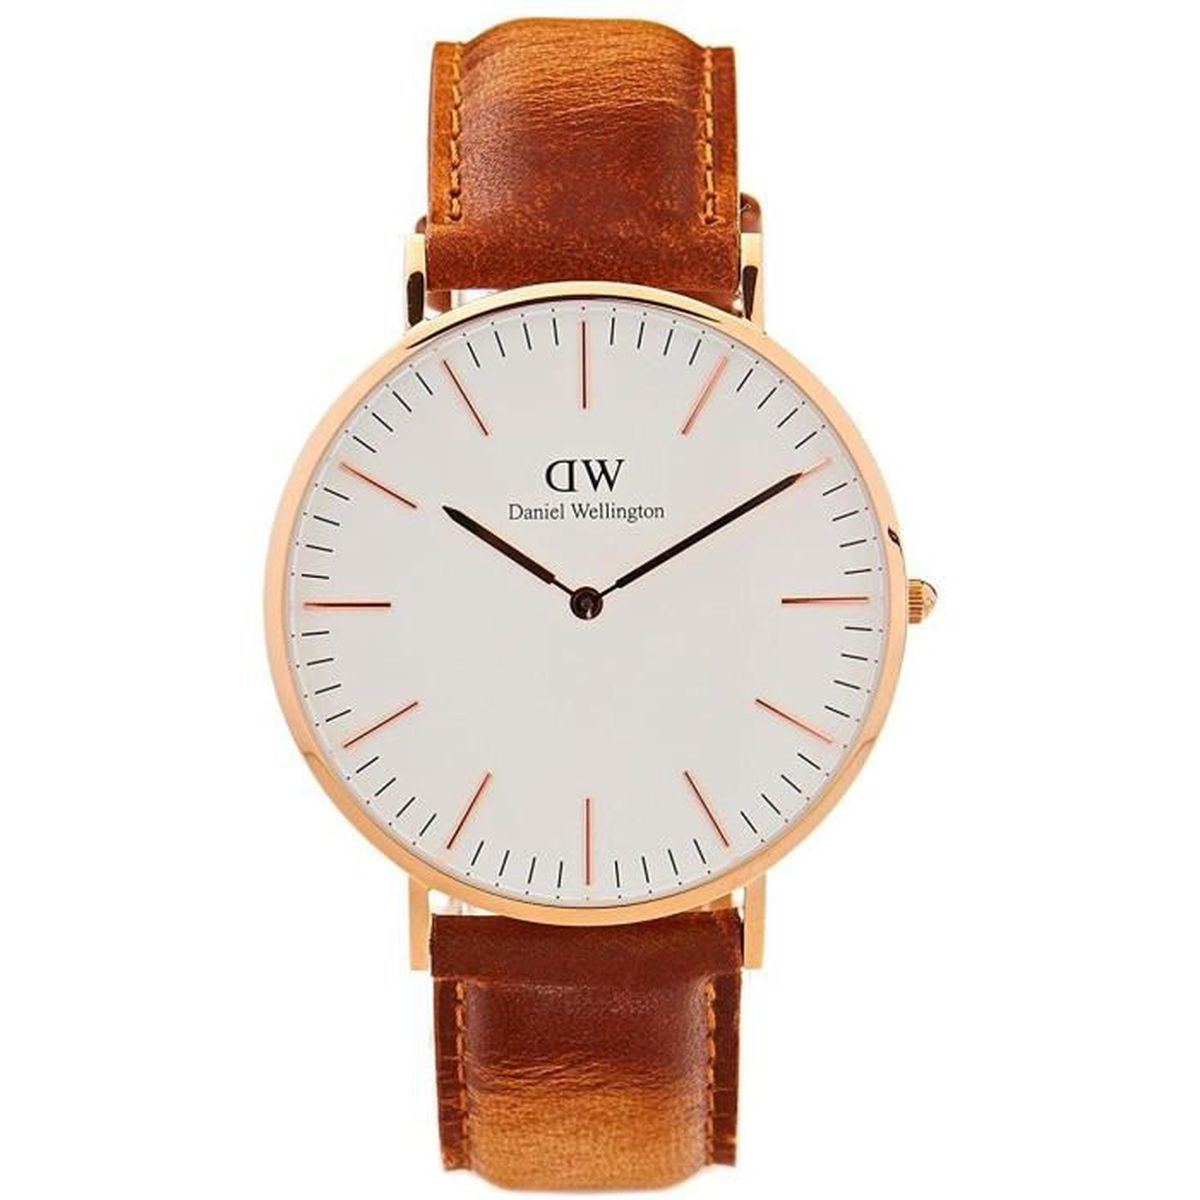 Montre daniel wellington homme bracelet marron